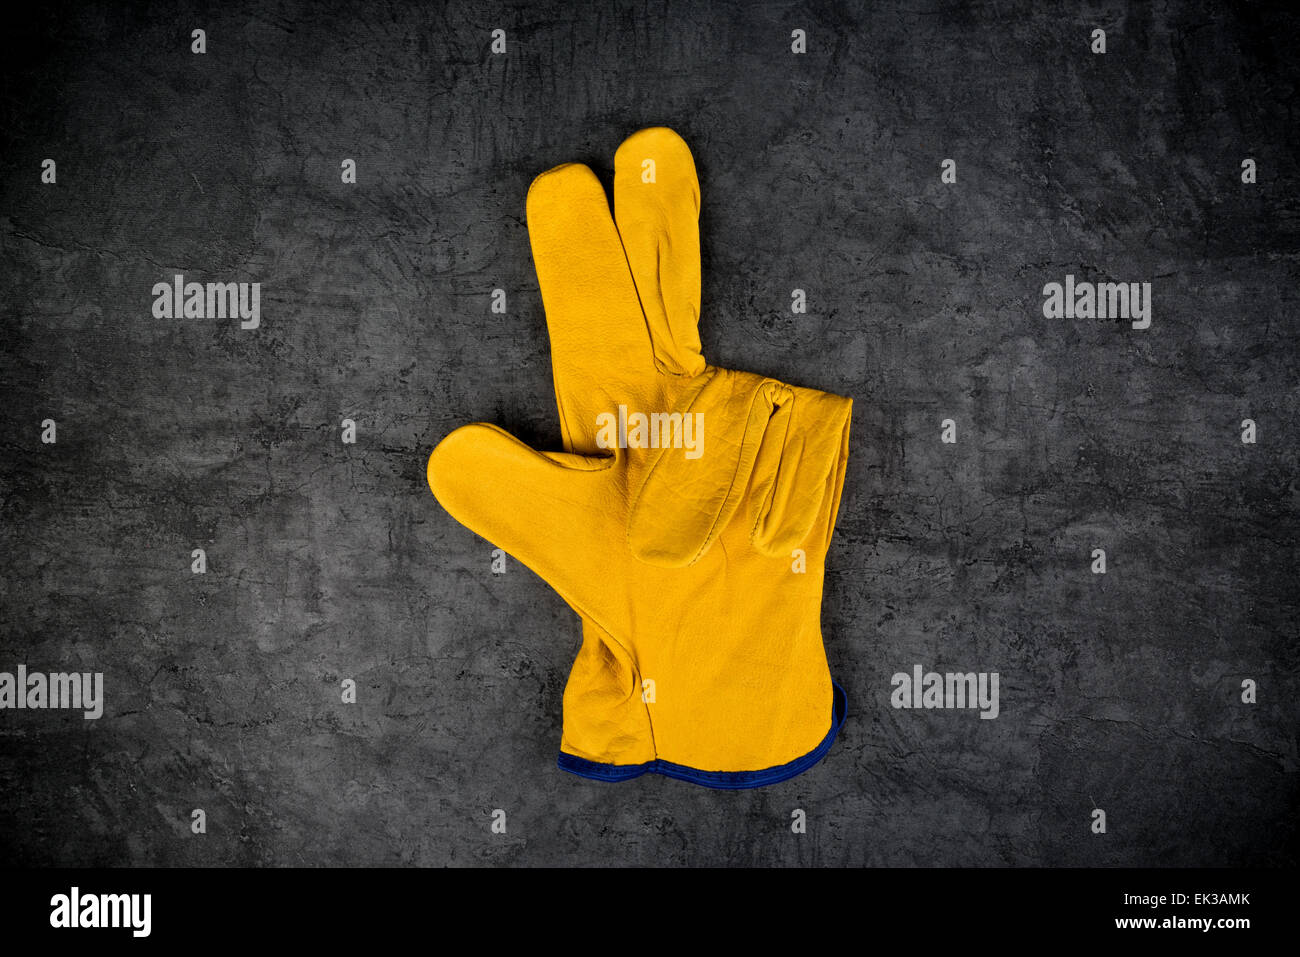 Yellow Leather Construction Engineer or Builder Working Protective Gloves Making Three Fingers Gesture. - Stock Image